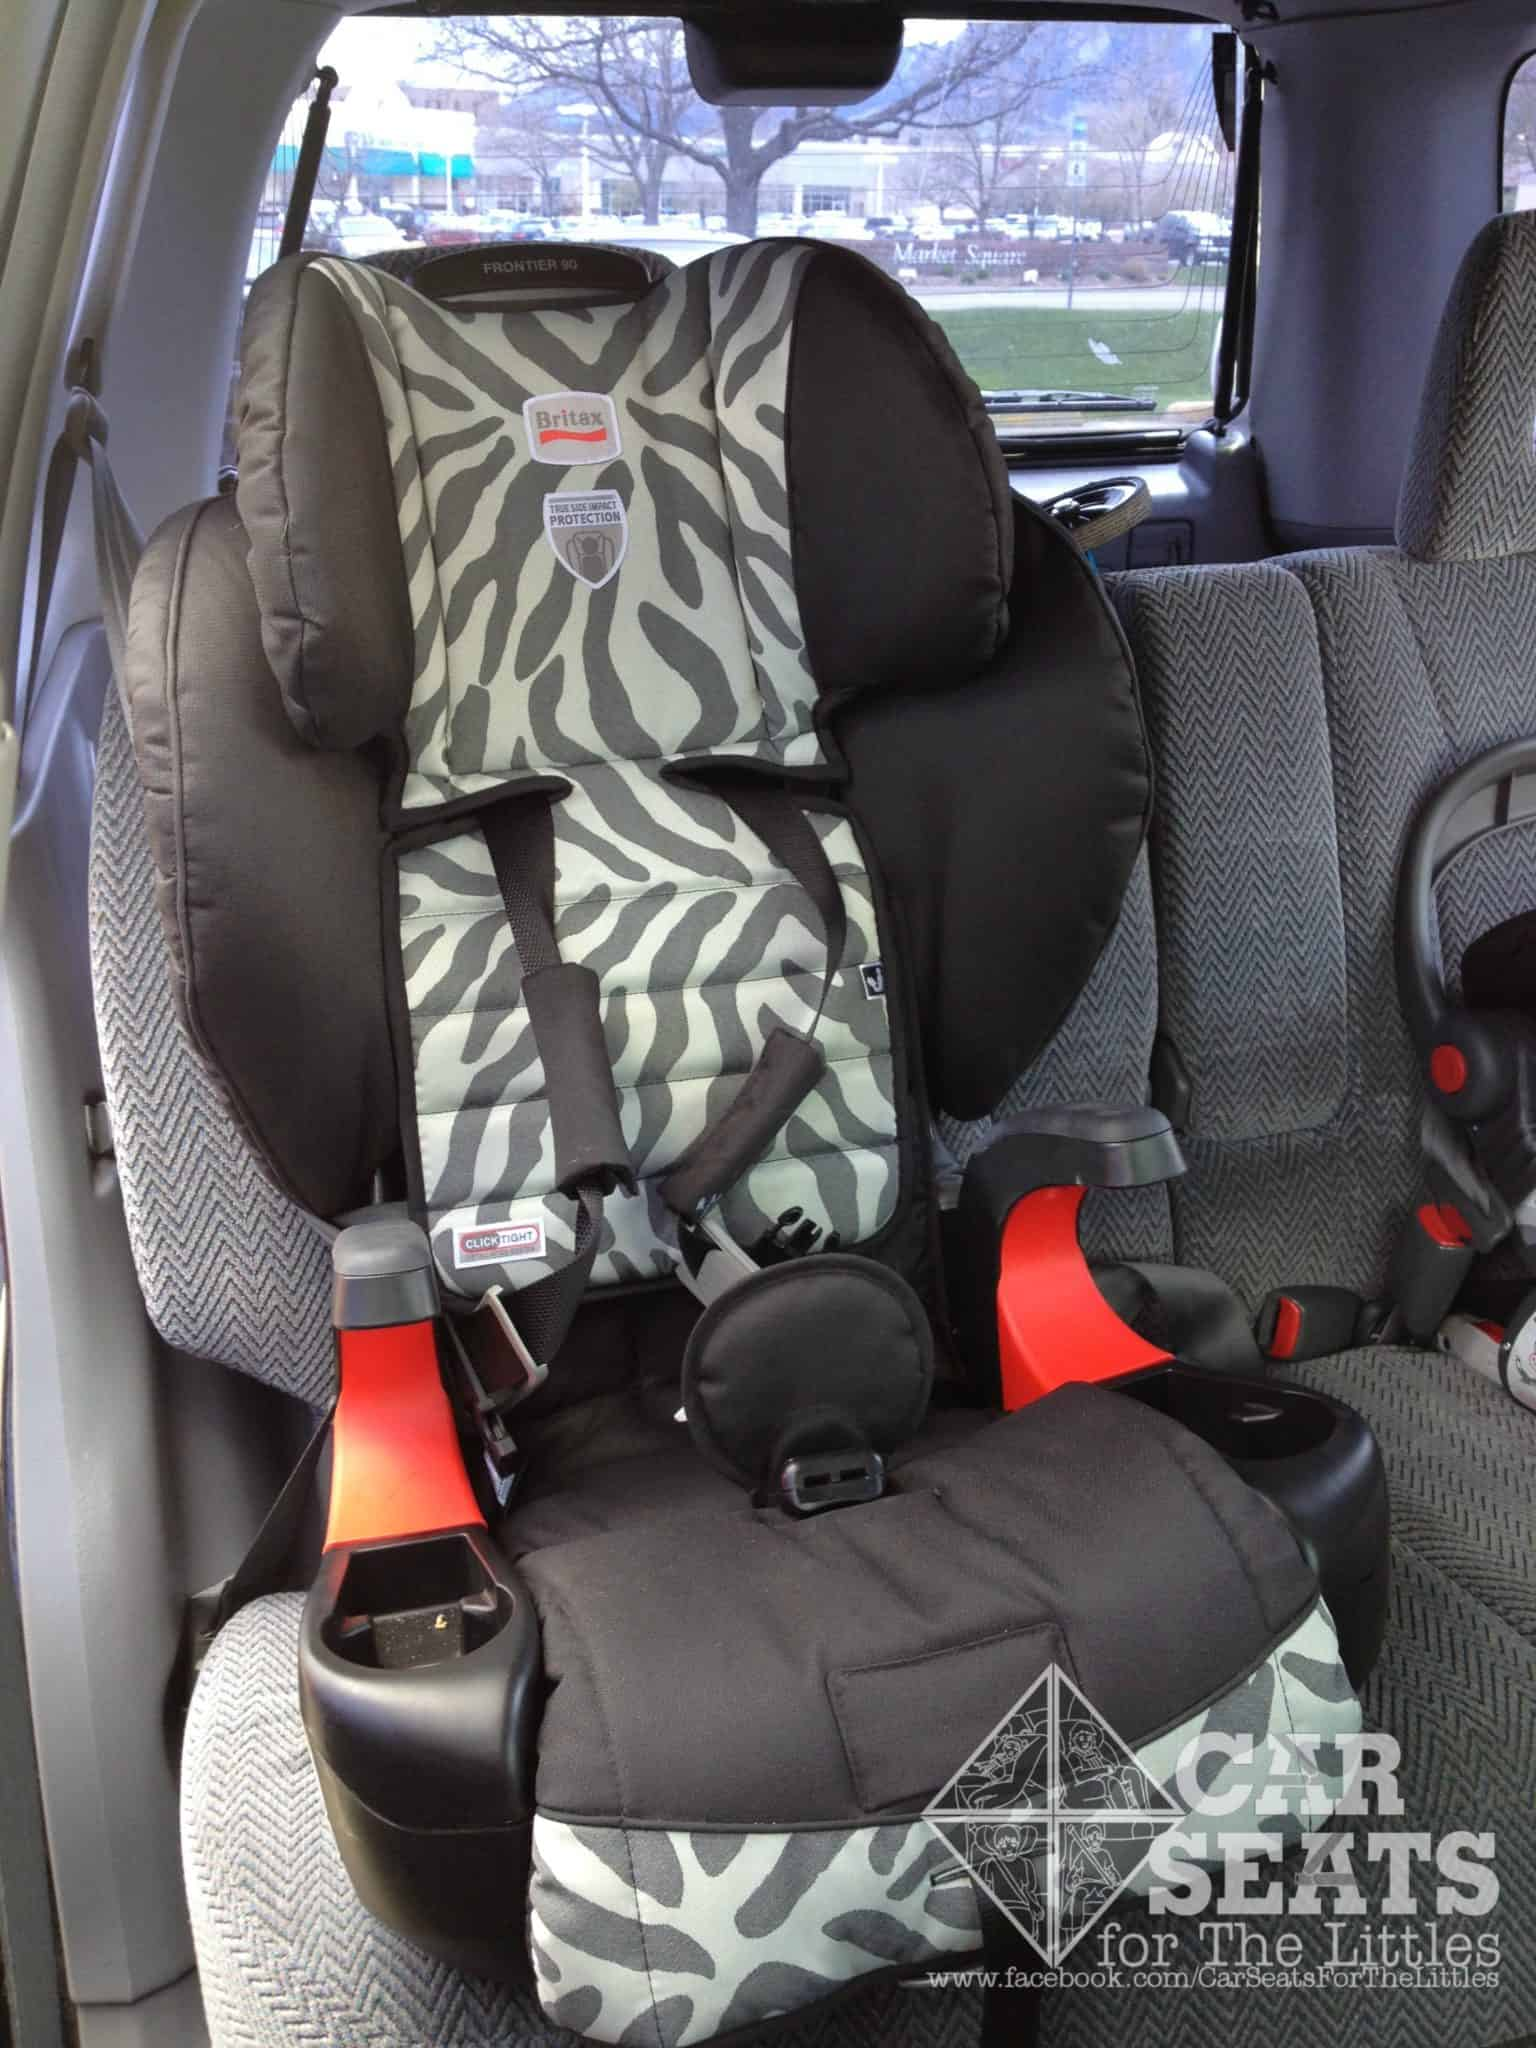 Britax Frontier 90, Frontier 85, booster, high back booster, no back booster, hbb, nbb, click tight, combination seat